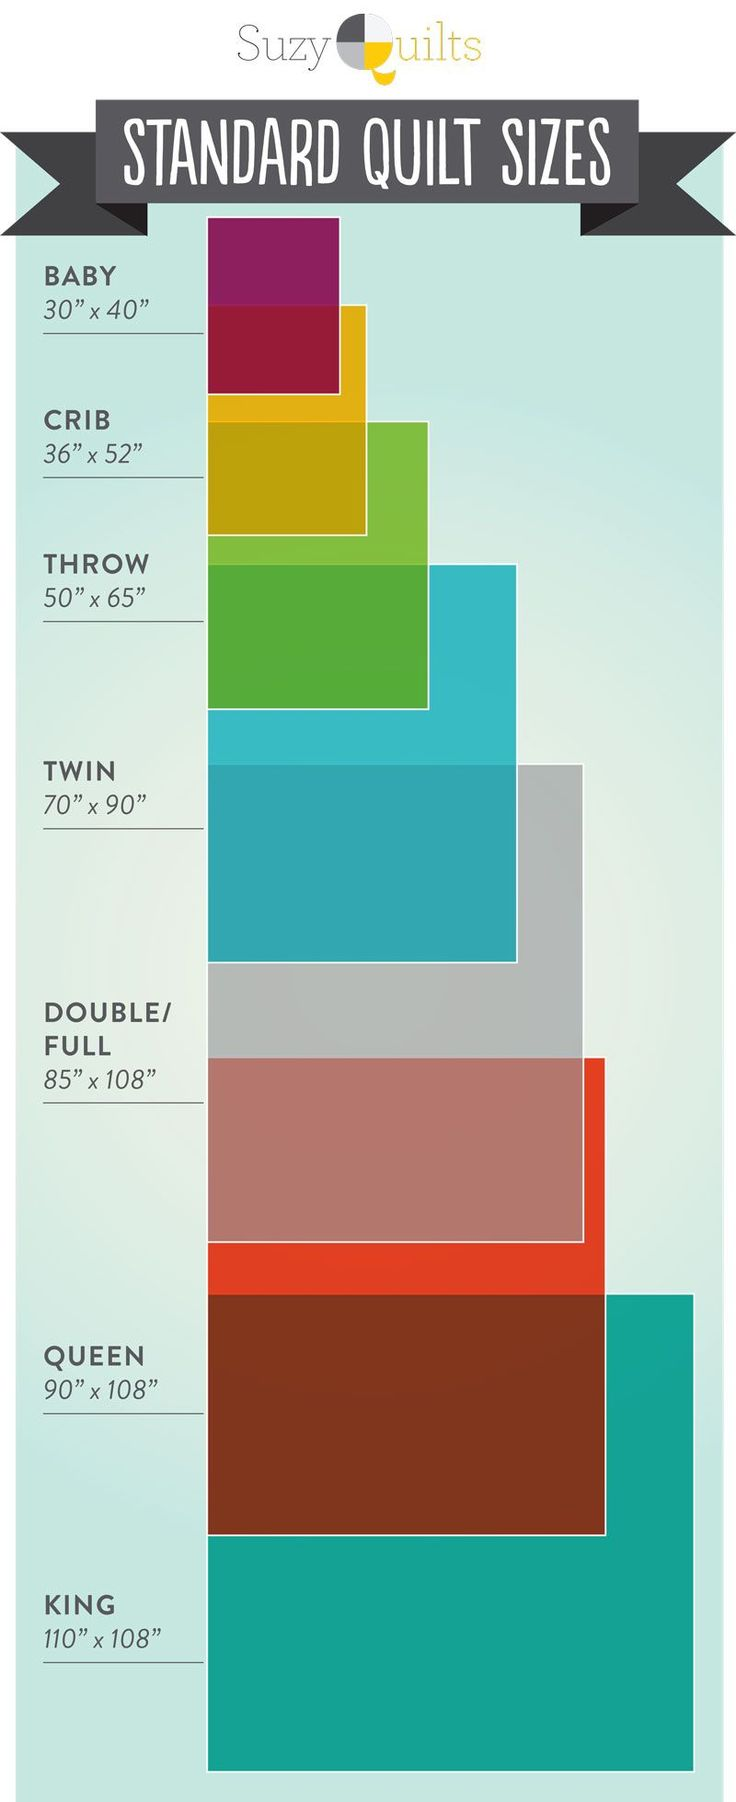 Quilt_Sizes_Infographic